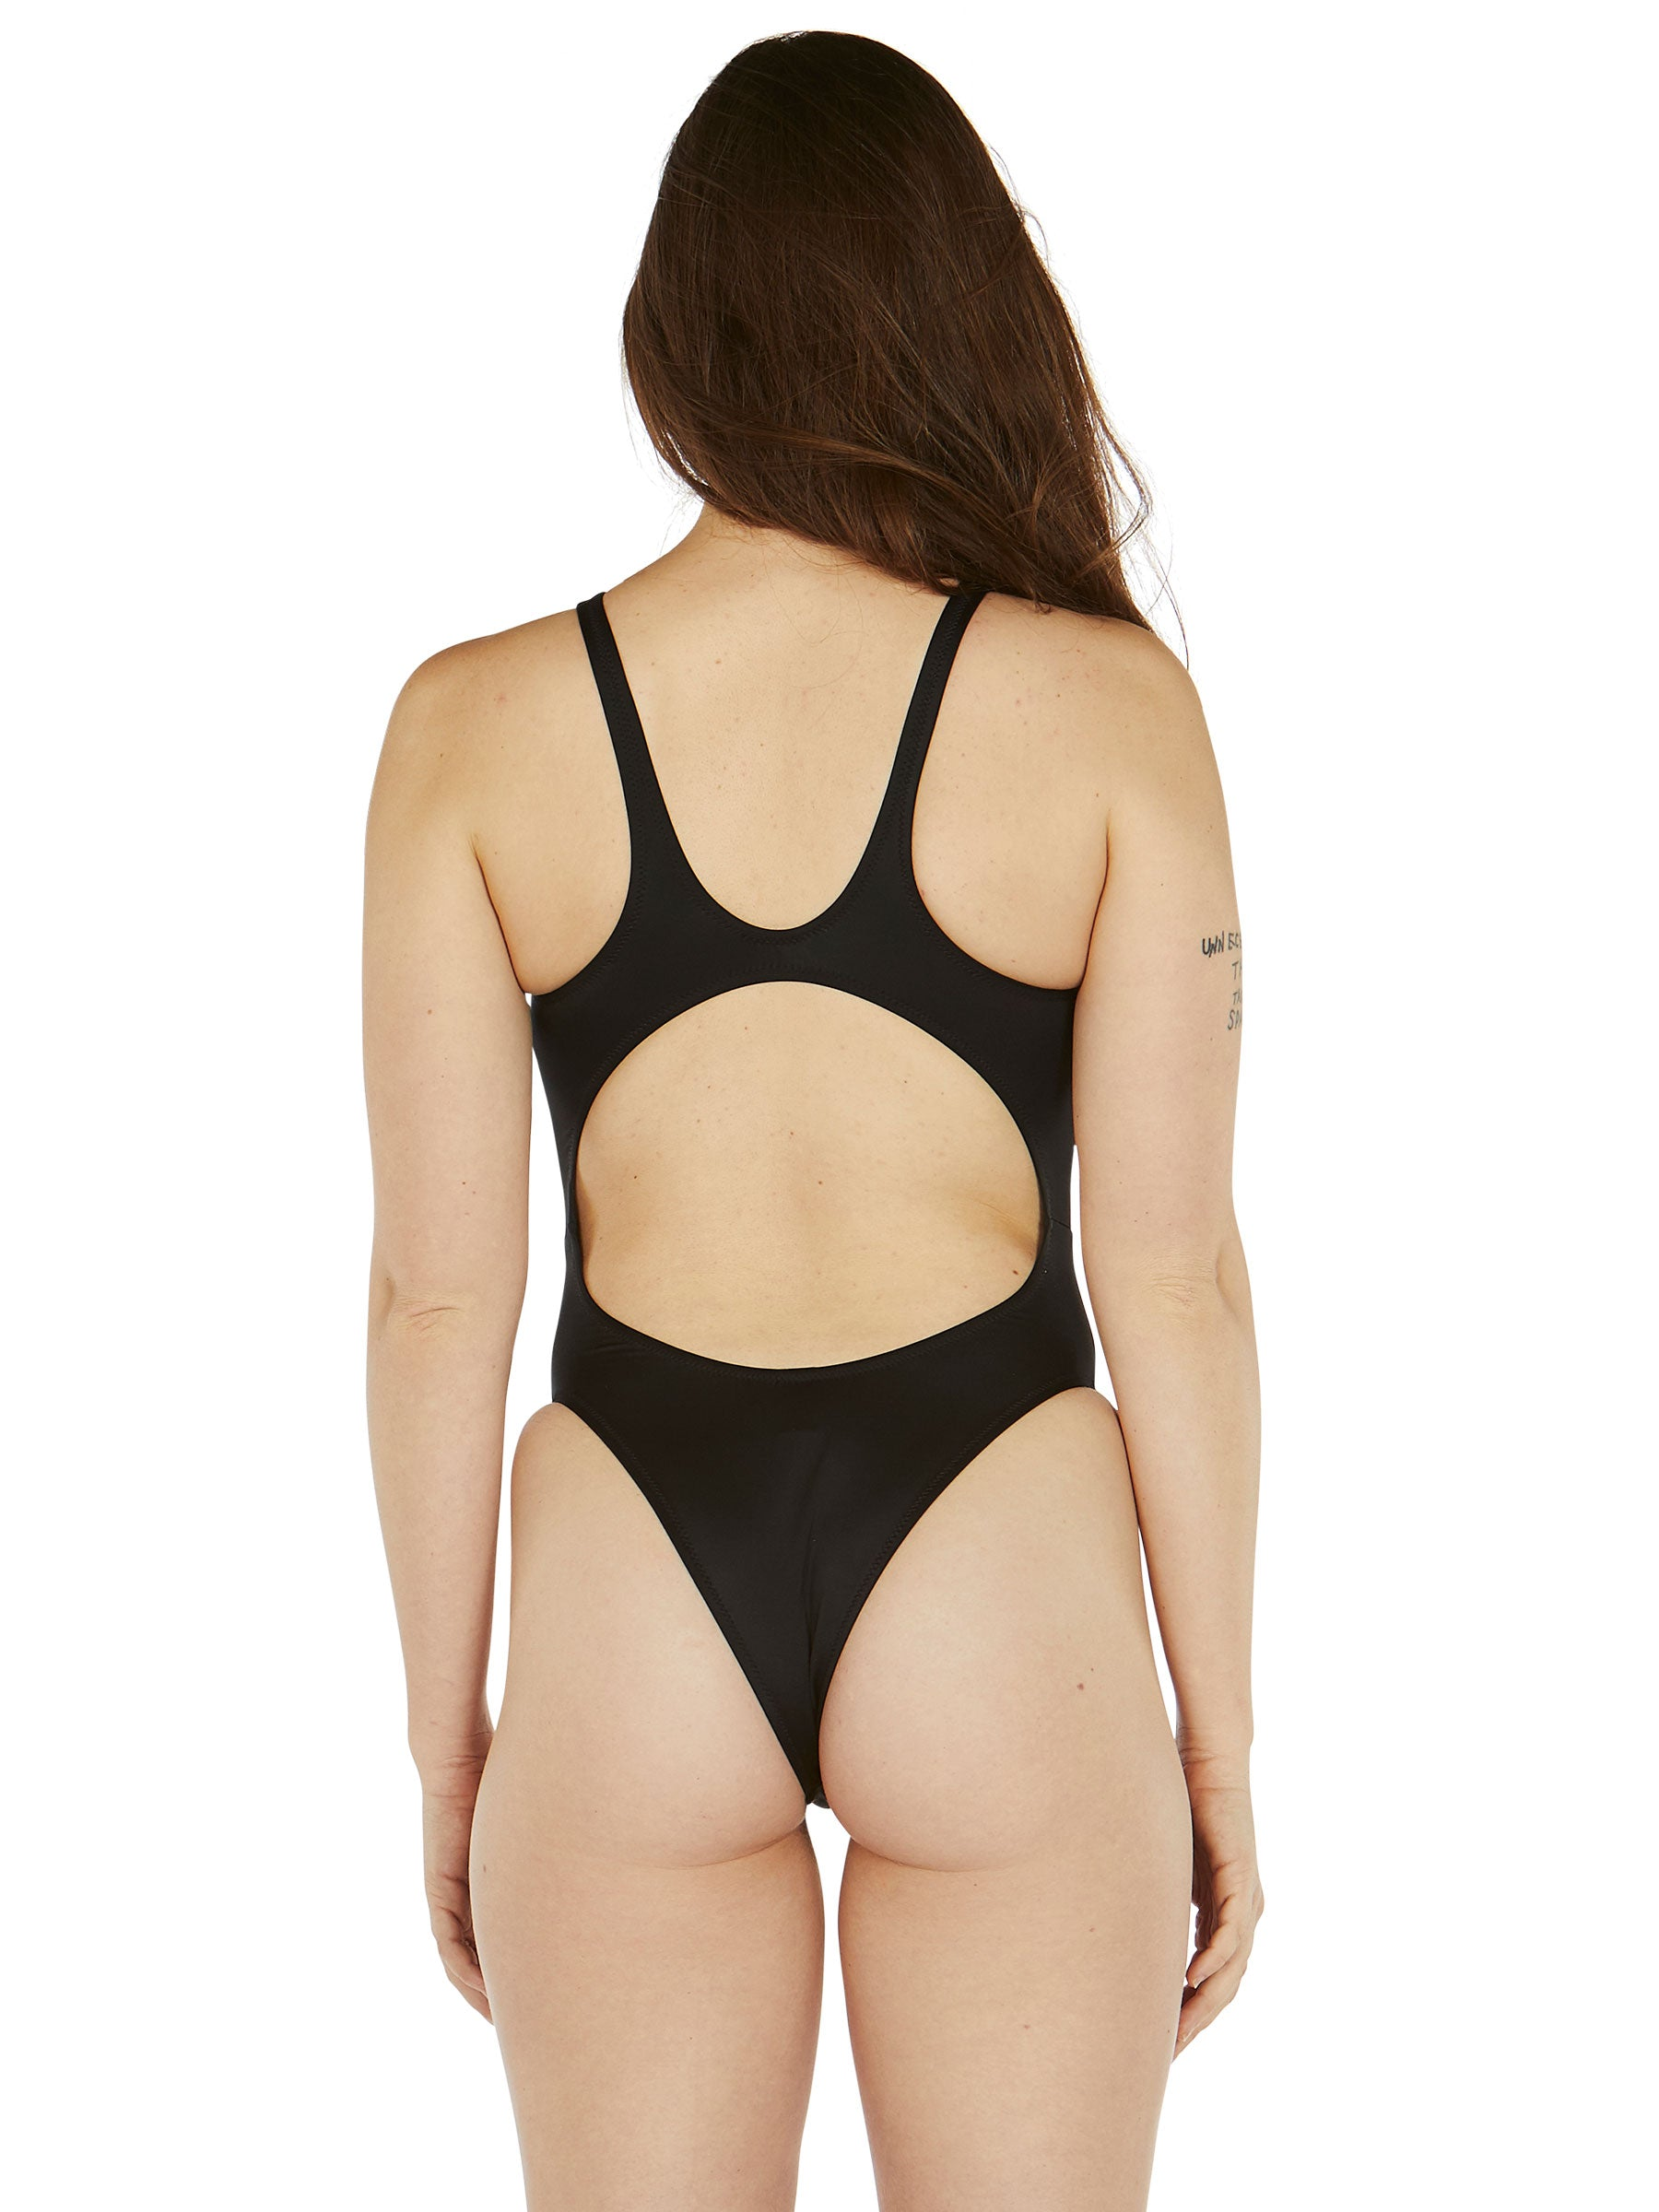 odd92 Fantabody Black Erika Swimsuit Spring/Summer 2019 Womenswear - 3